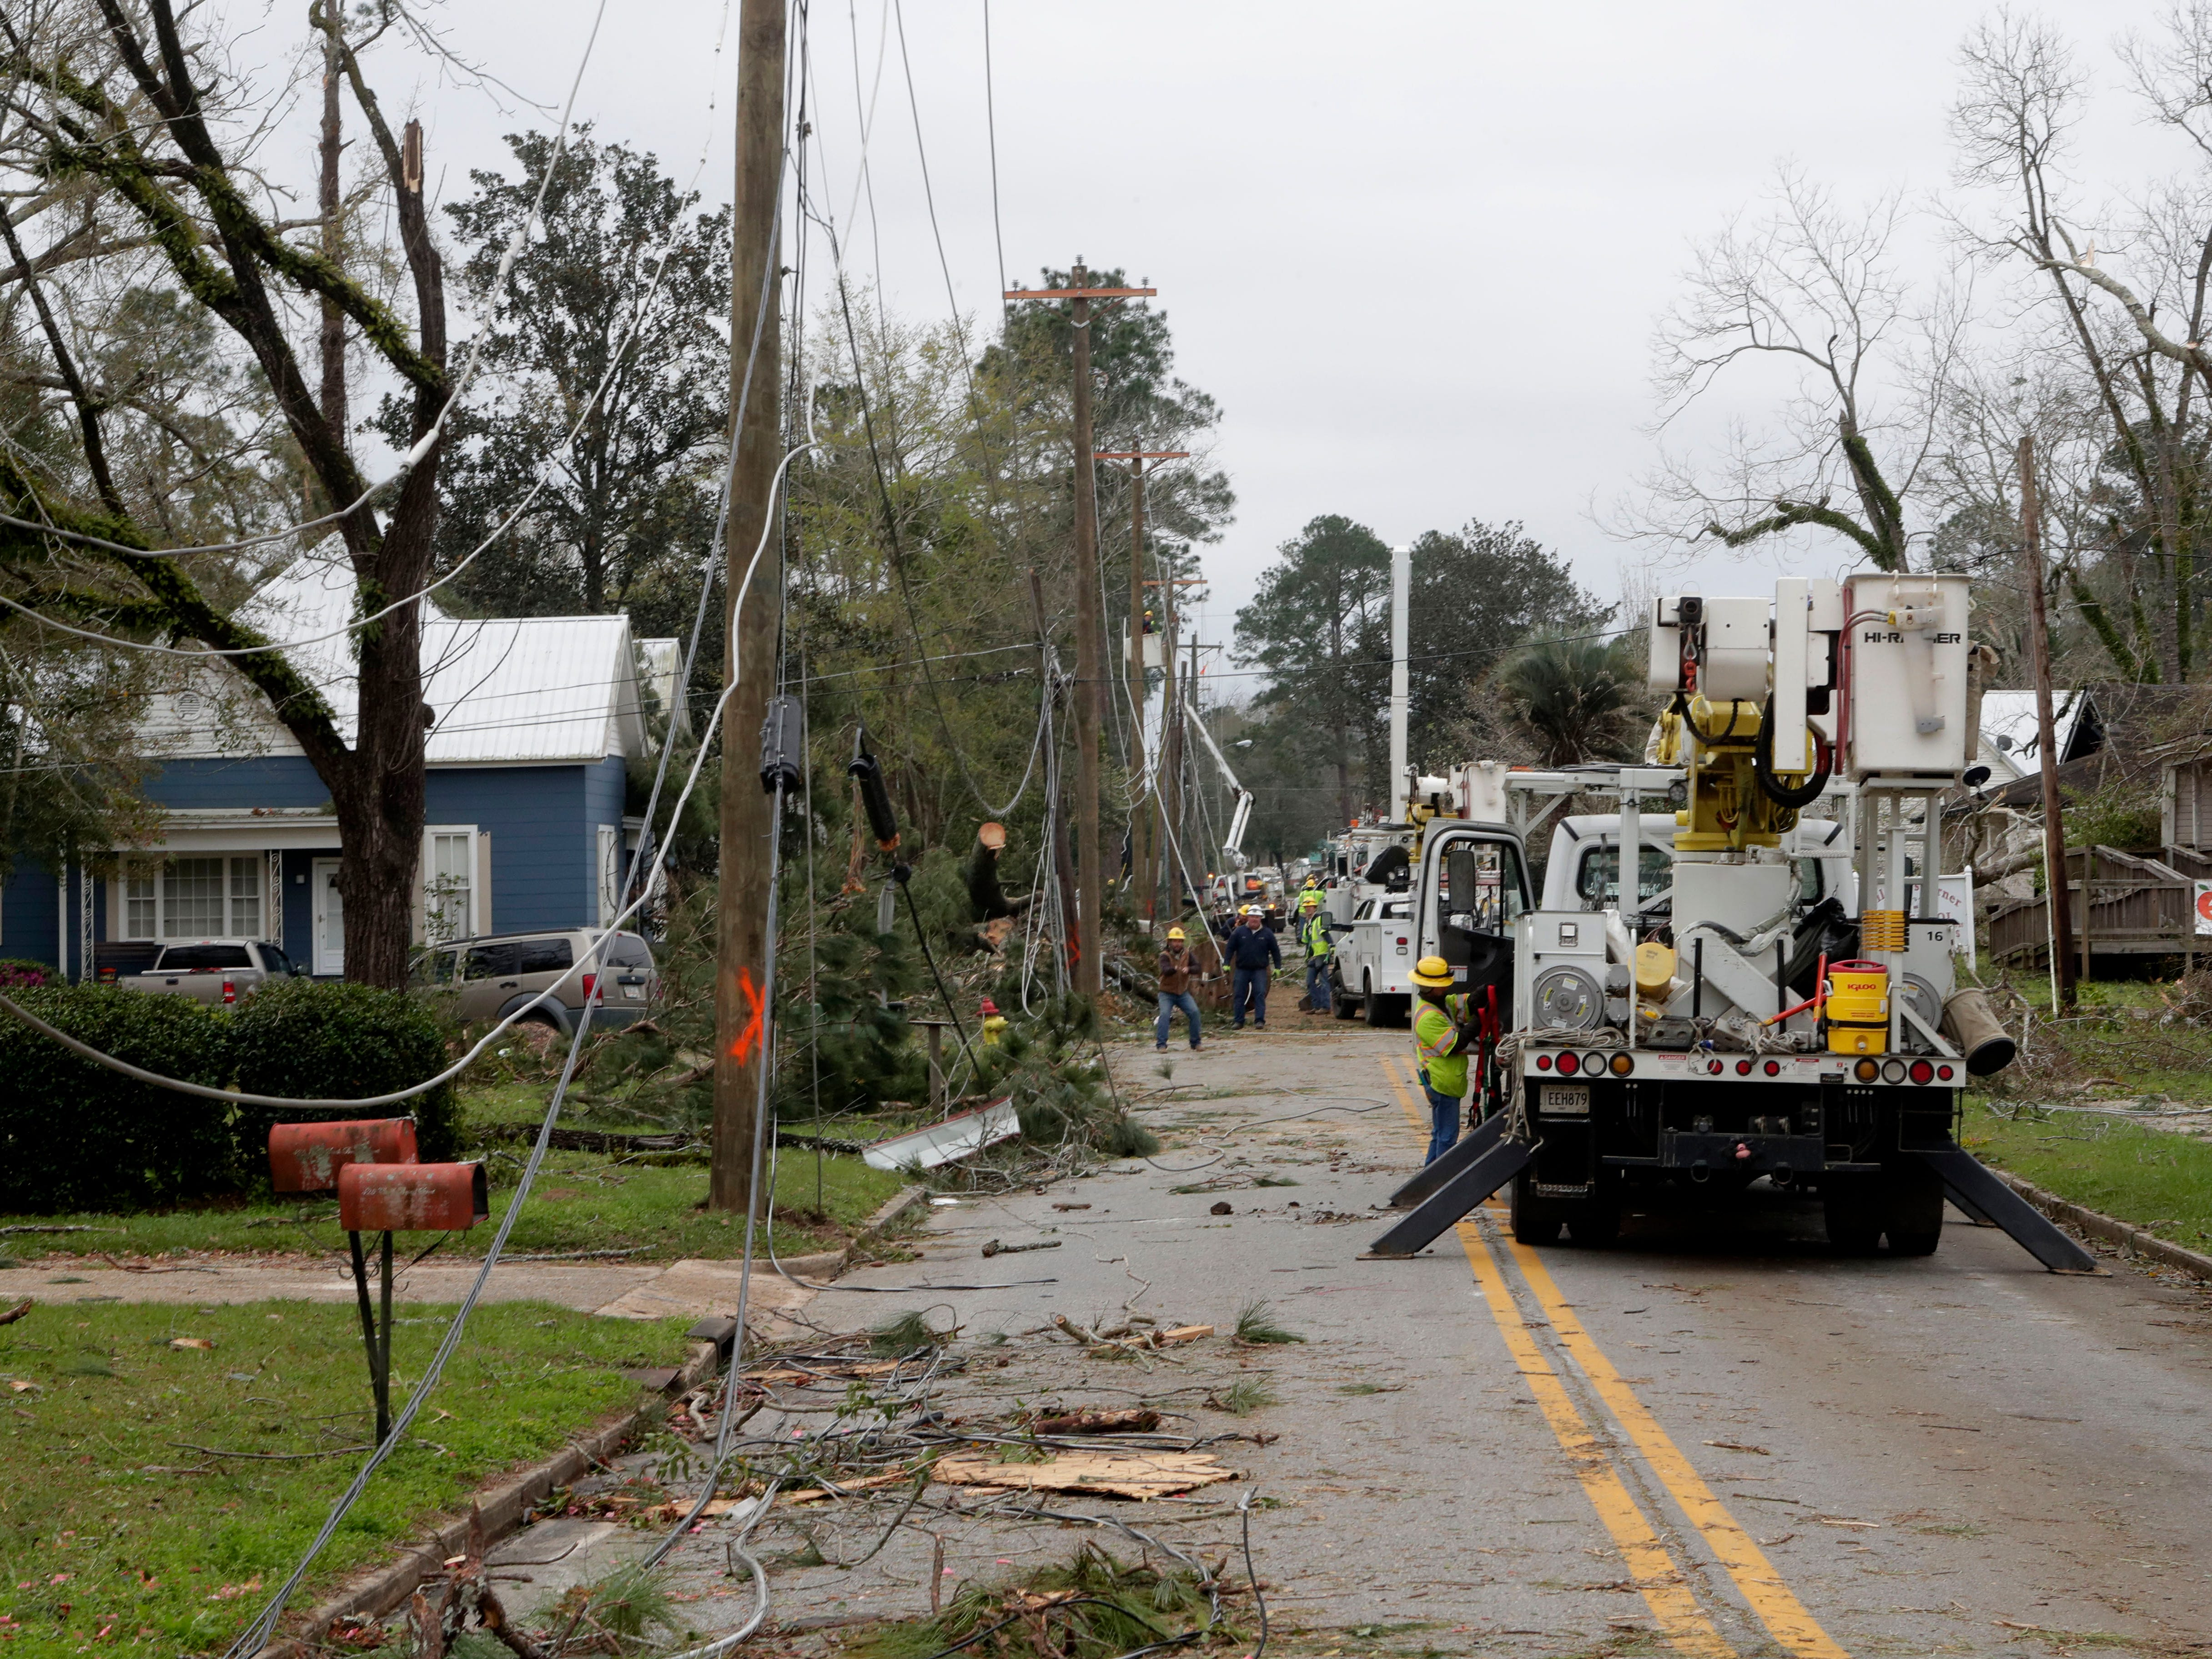 Crews work to clean up debris and fallen power lines in Cairo, Ga. on March 4, 2019.